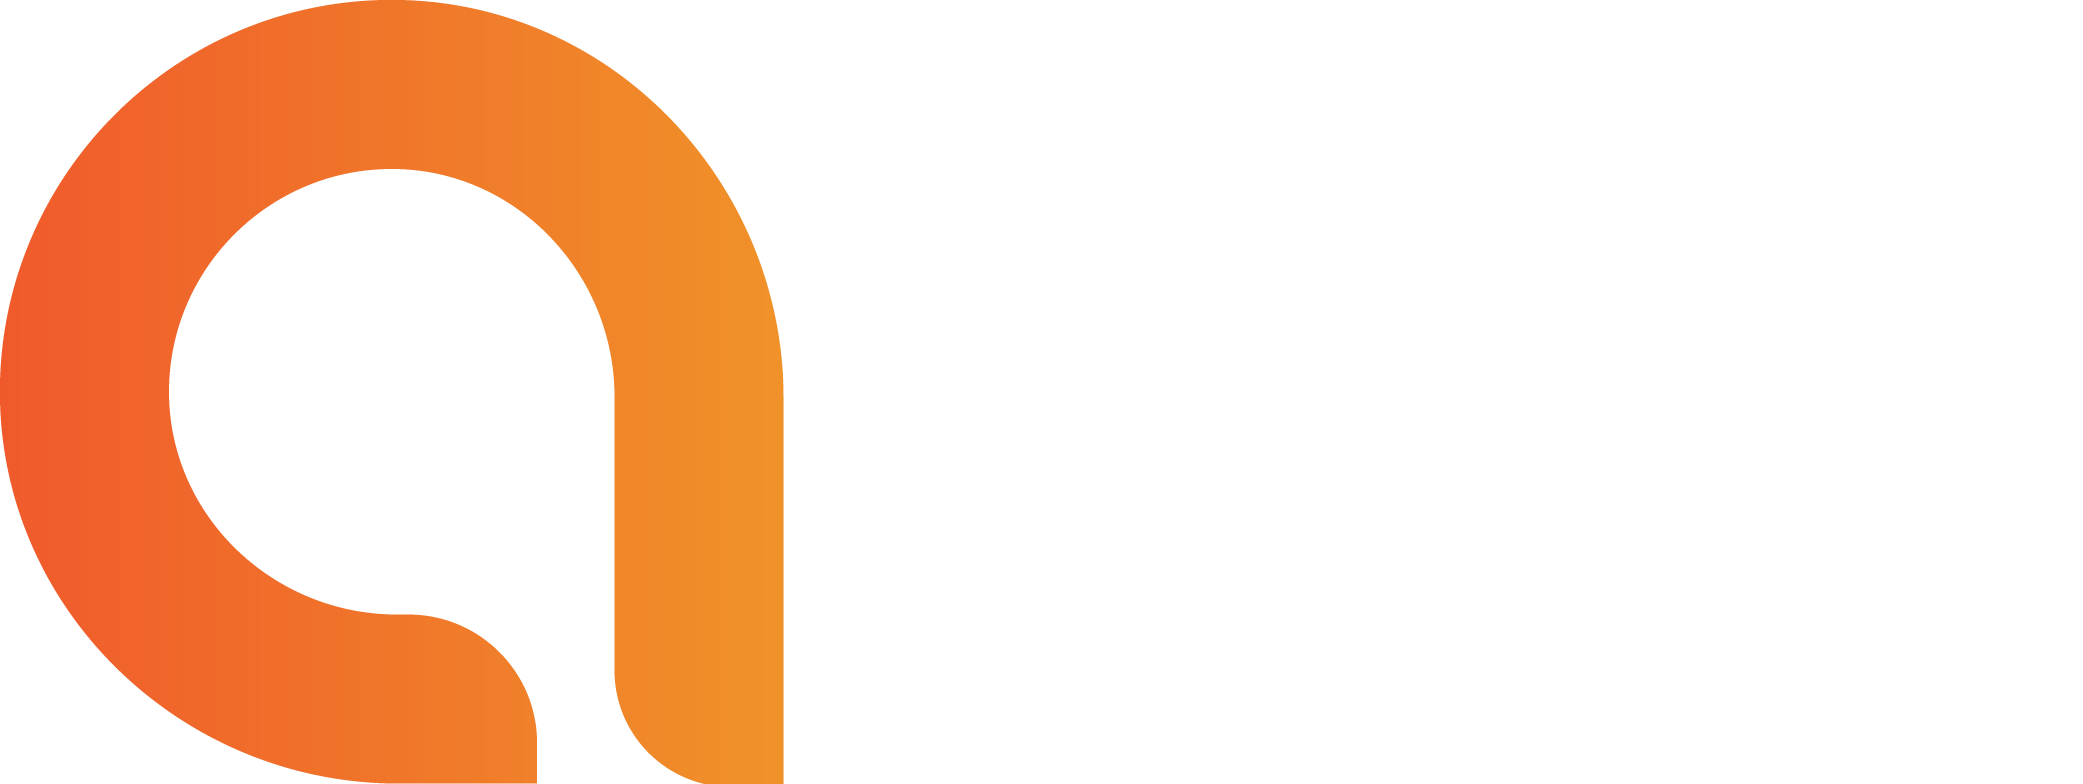 AARTI INDUSTRIES LIMITED